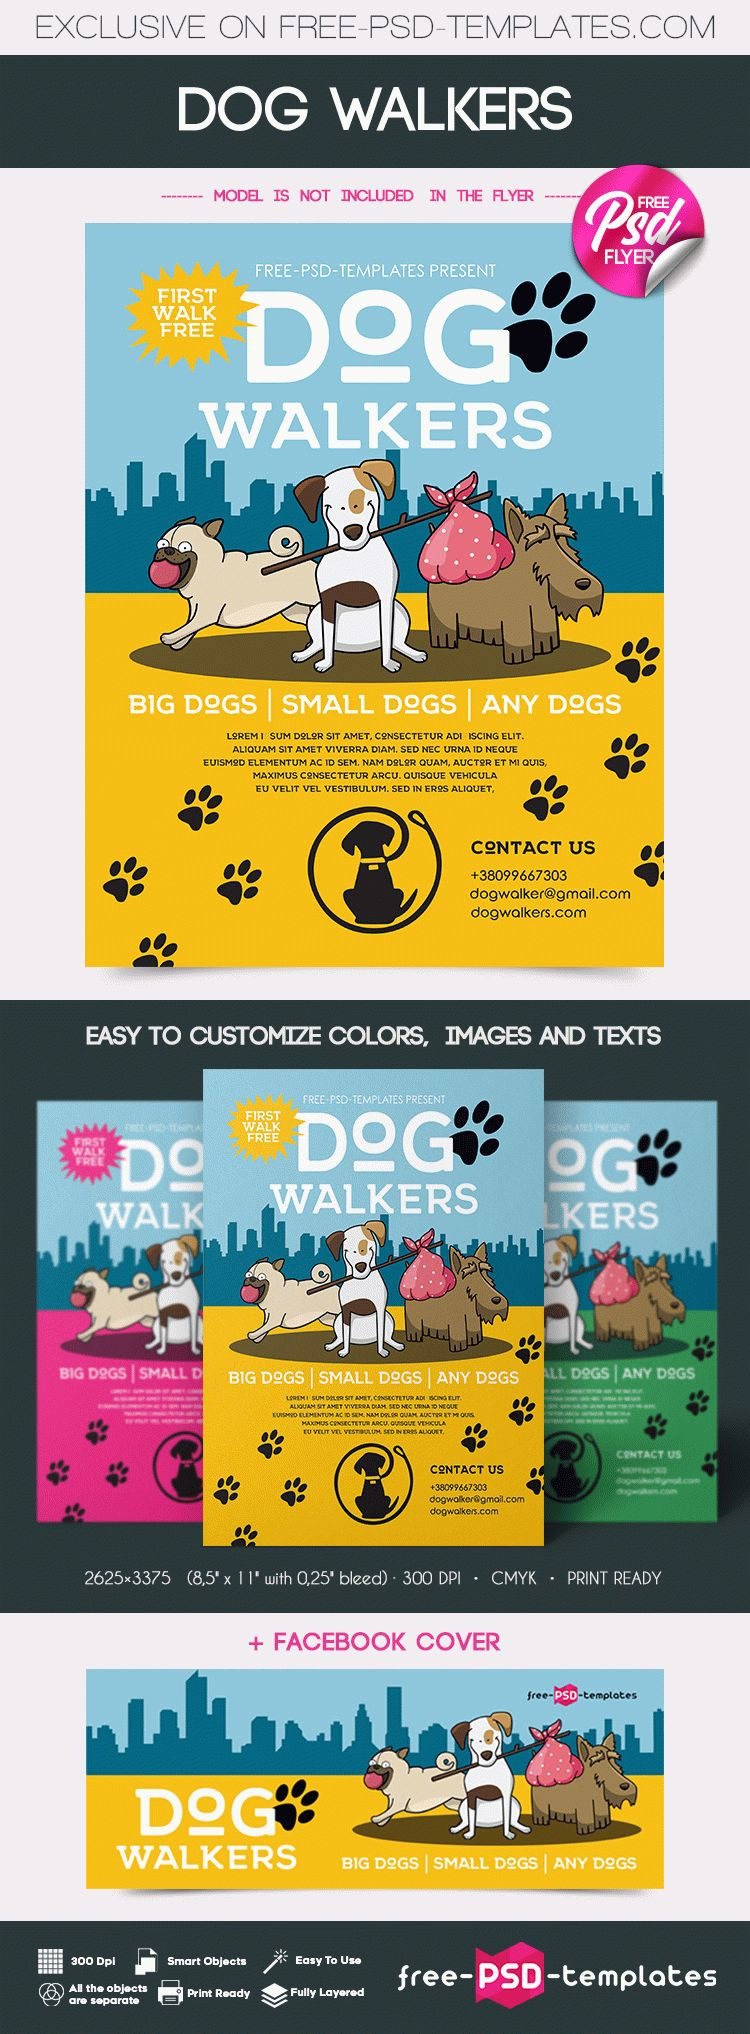 Free Dog Walkers Flyer in PSD | Free PSD Templates